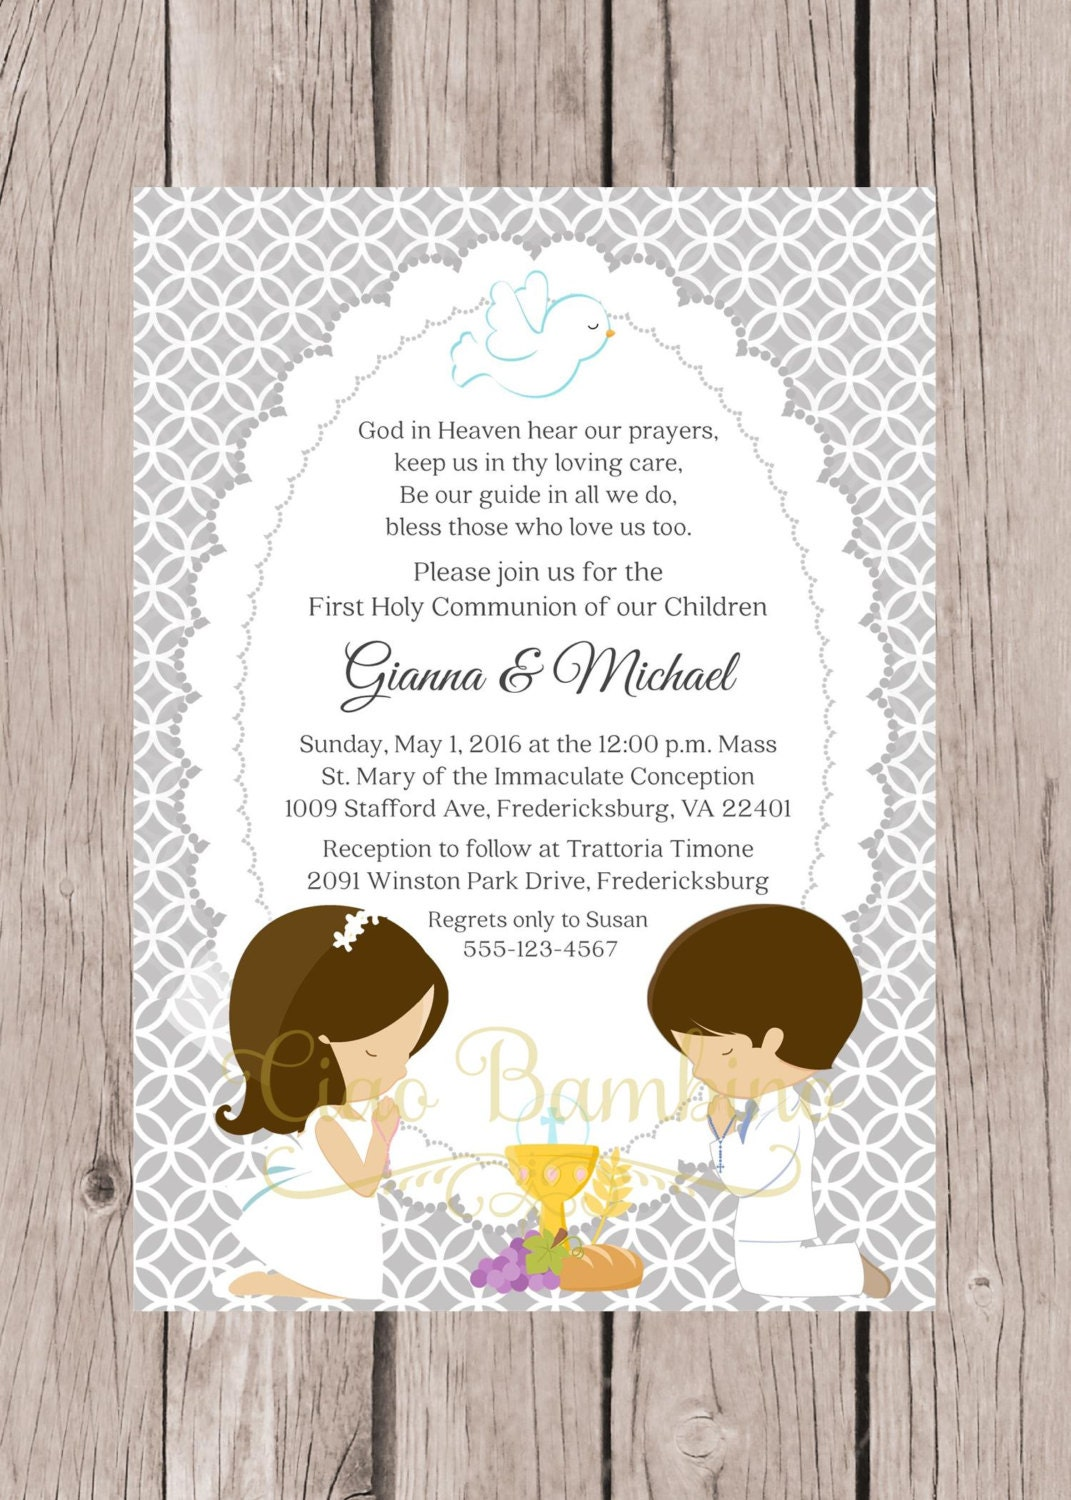 Playful image with printable first communion invites